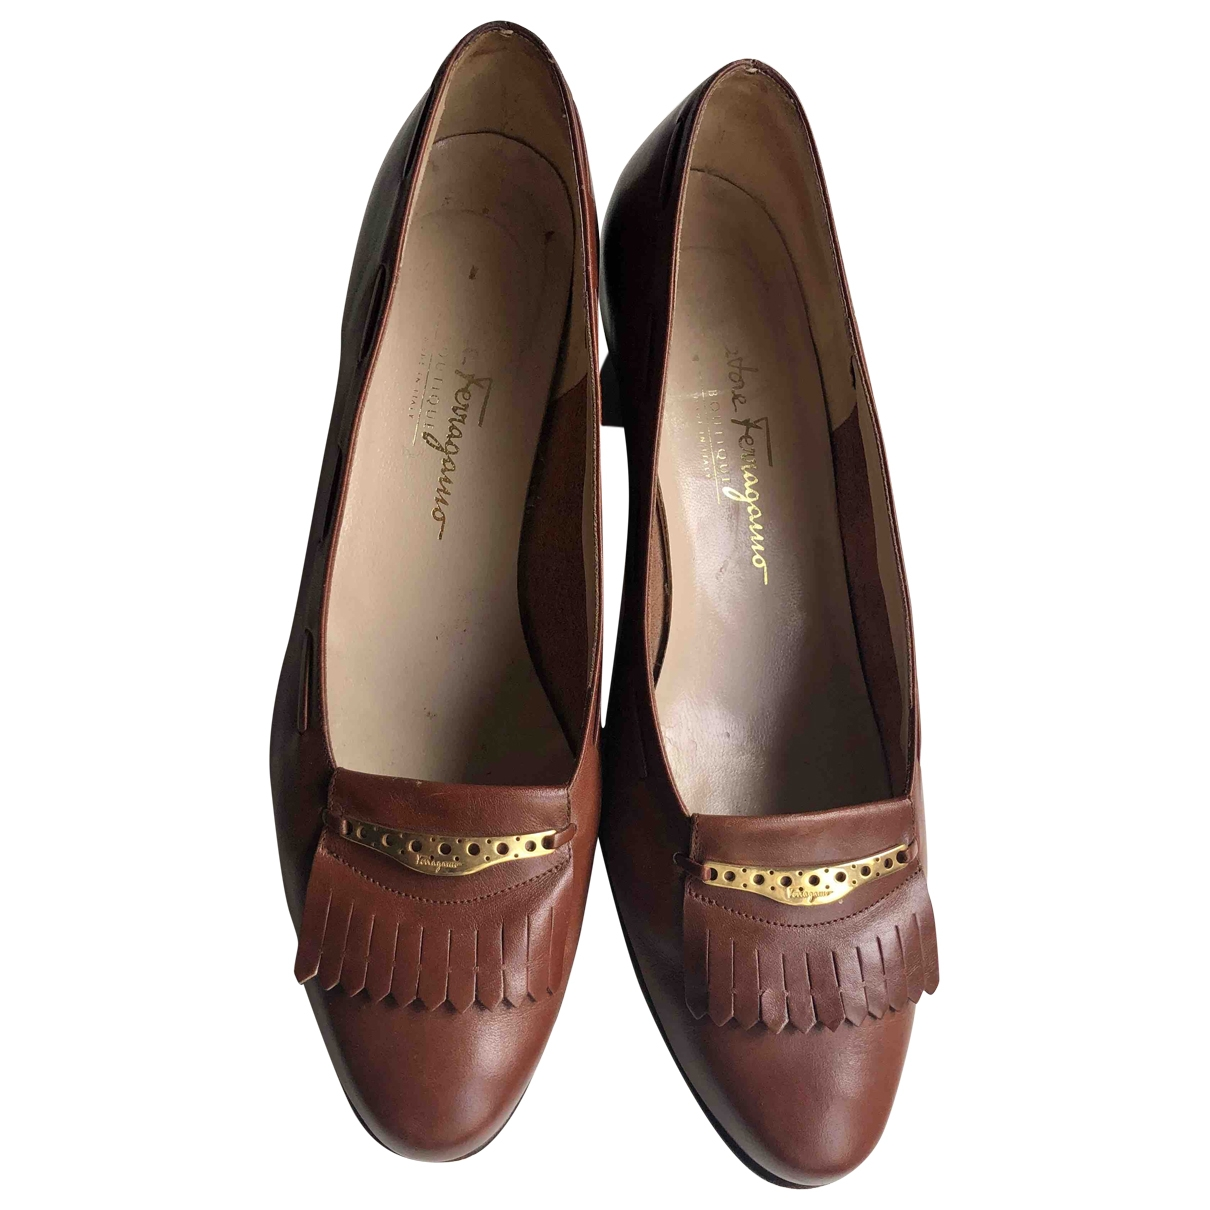 Salvatore Ferragamo \N Brown Leather Heels for Women 40 EU